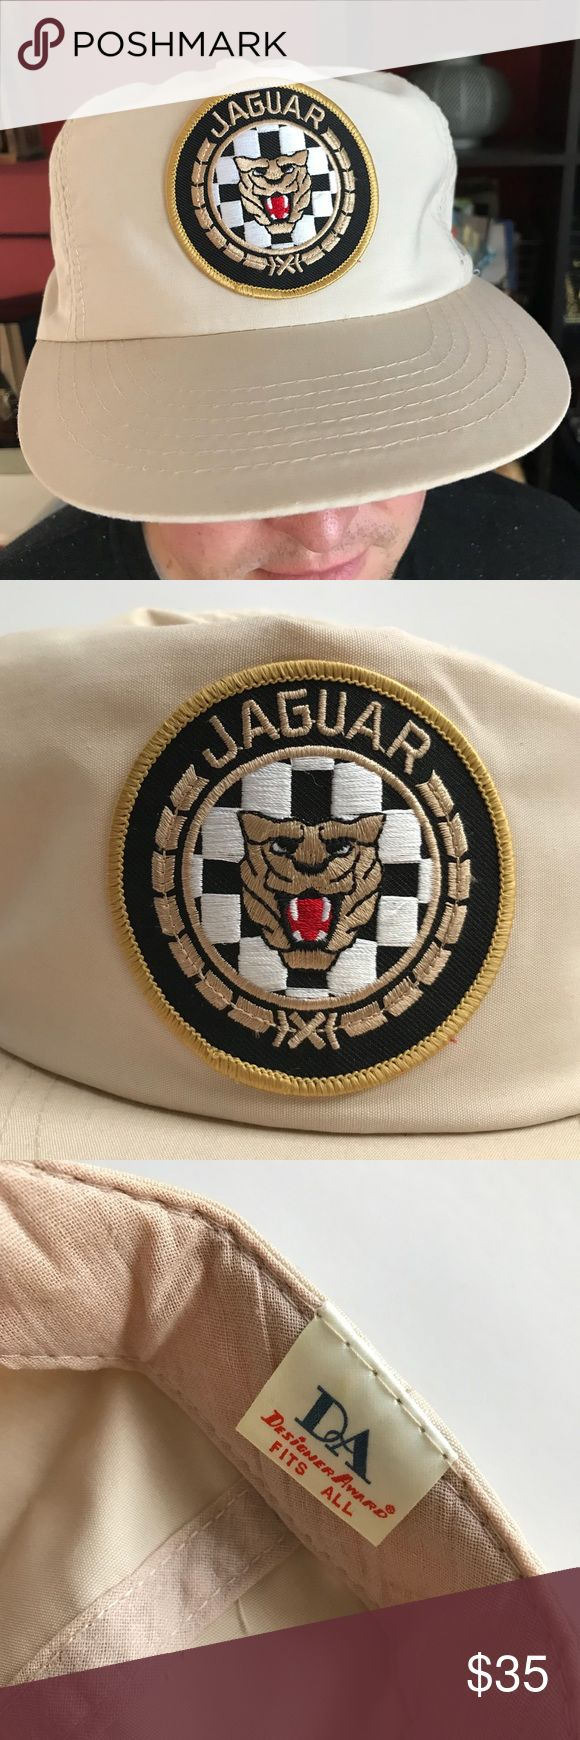 💎Vintage Jaguar Car Trucker SnapBack Hat Vintage Jaguar Car hat for a Jaguar lover! Small amount of yellowing on underside of brim, see photo. Small blemish (can be dry cleaned) see photo. Otherwise in pristine condition. Mesh forehead underneath, fits all sizes. Comps sell for between $30-$50. Snag this awesome collectible for your Jaguar lover! All offers welcomed and greatly considered! Vintage Accessories Hats